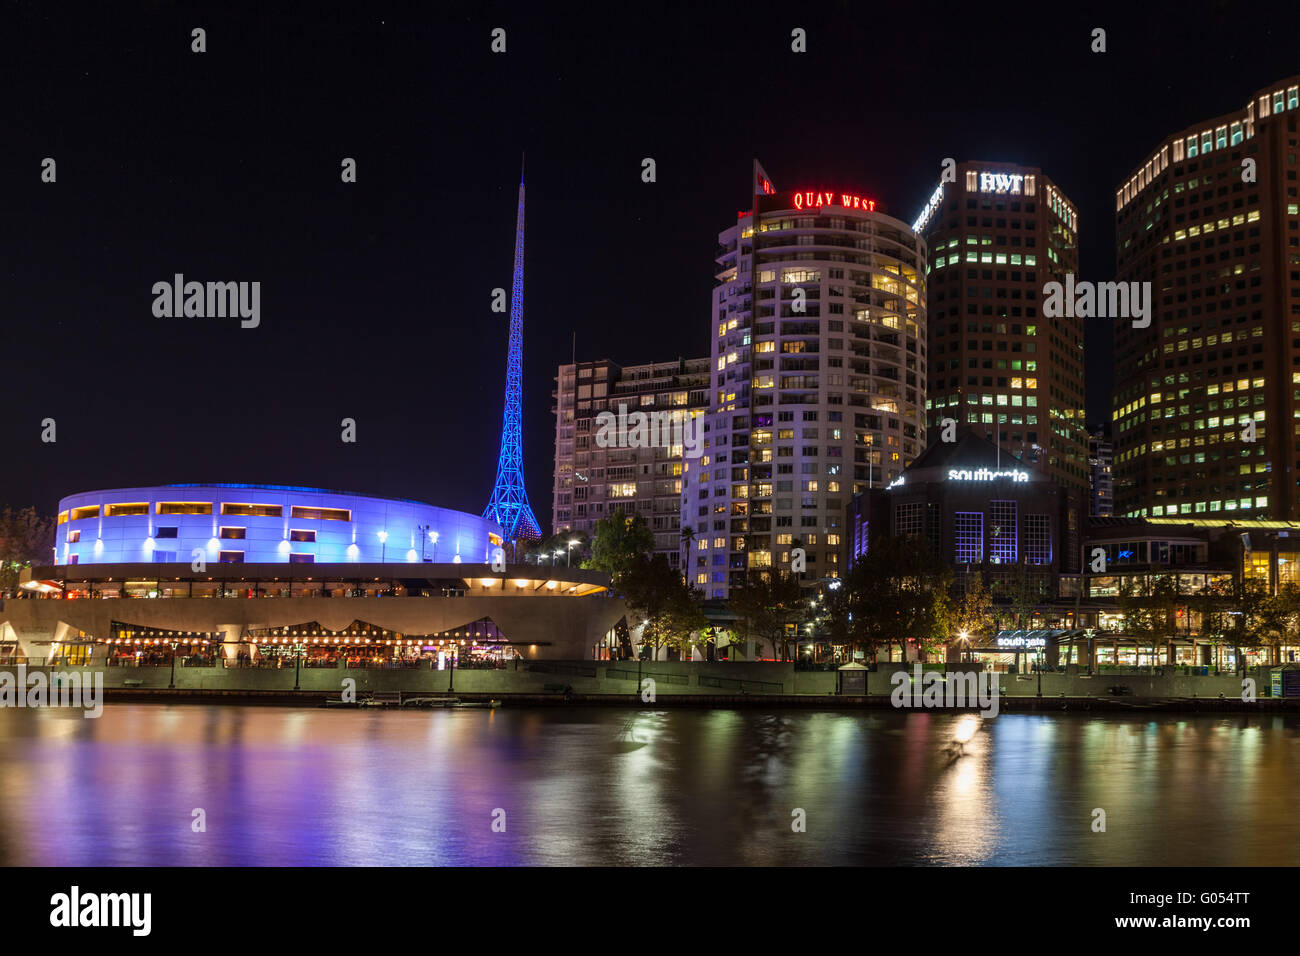 Melbourne CBD - APR 16 2016: Nightscape over Yarra river with Melbourne Arts Centre tower lit in bright blue color. - Stock Image